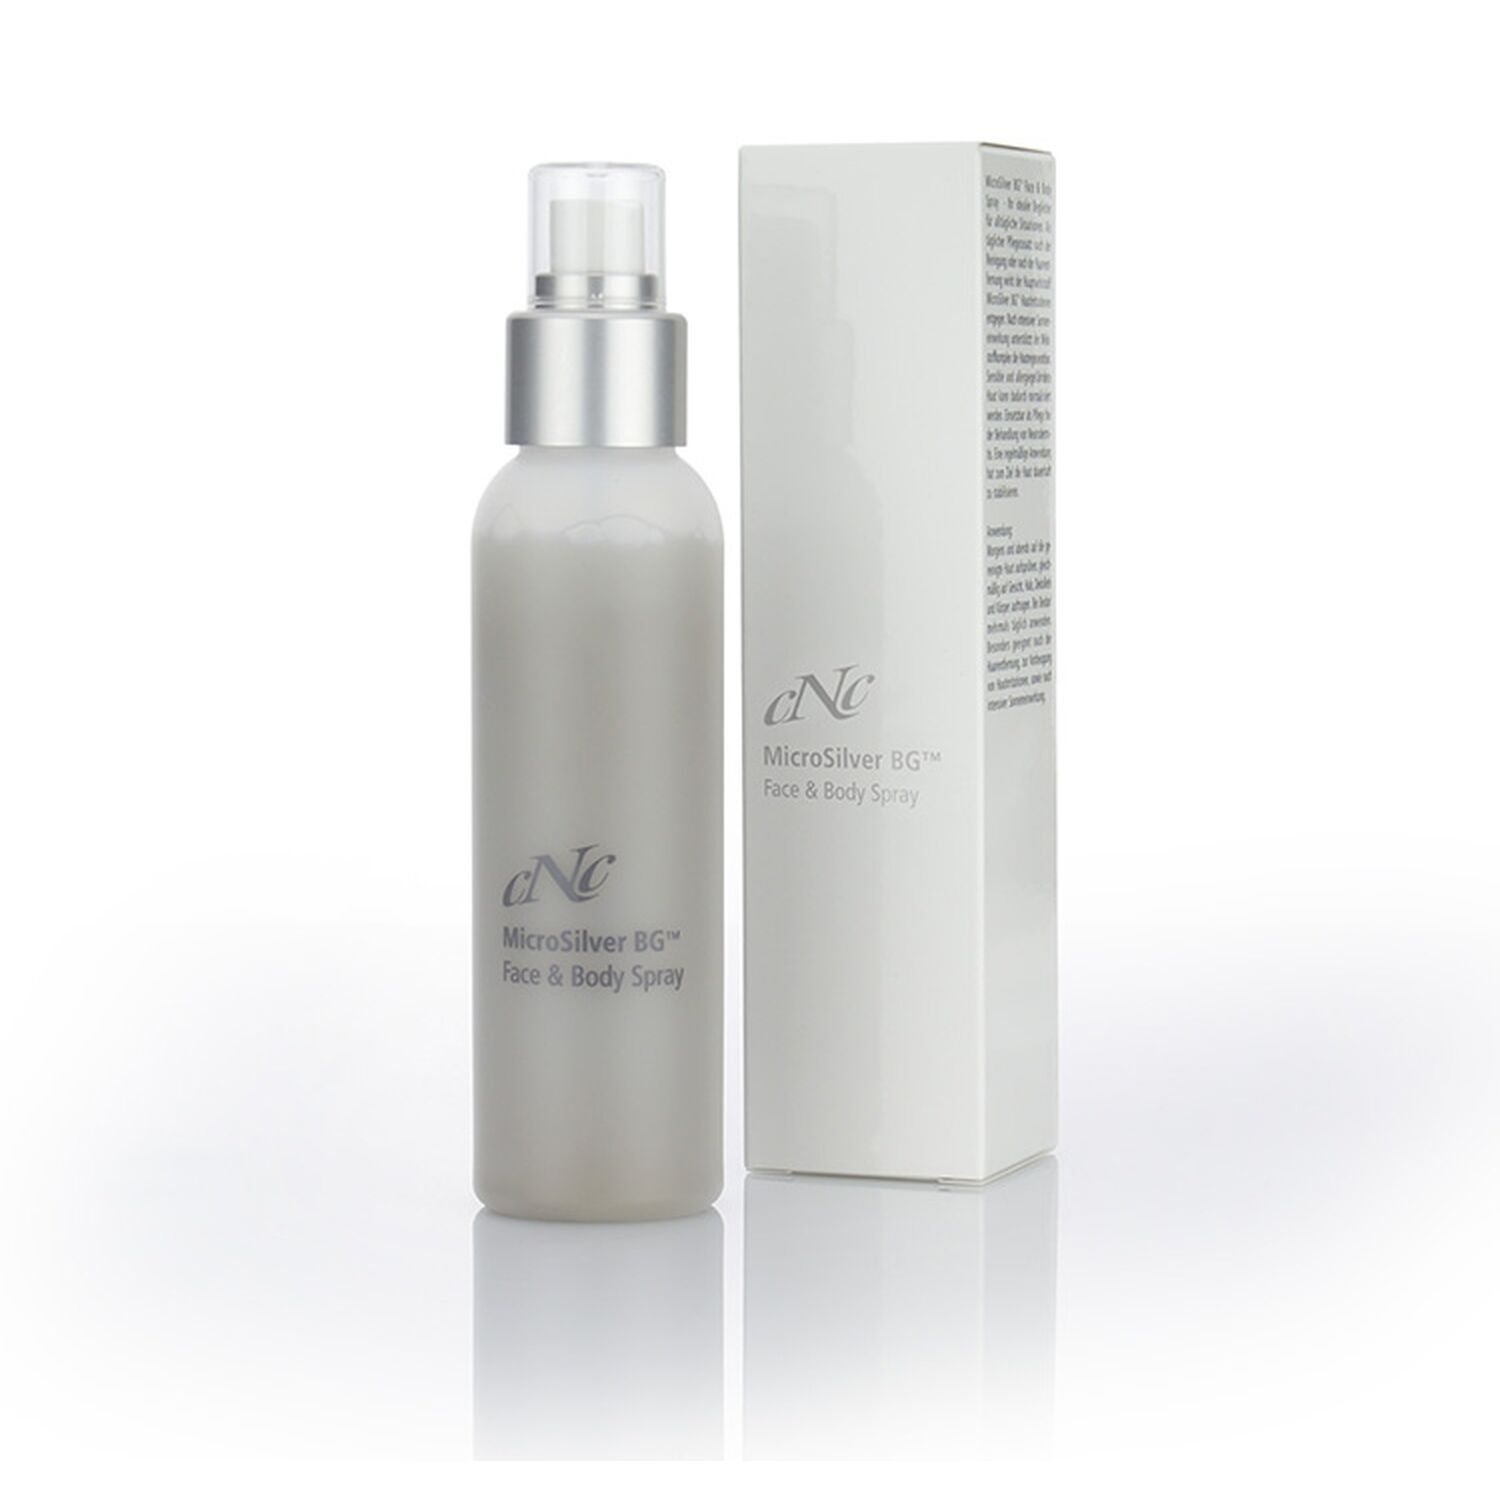 CNC Cosmetic - MicroSilver Face & Body Spray - 100ml